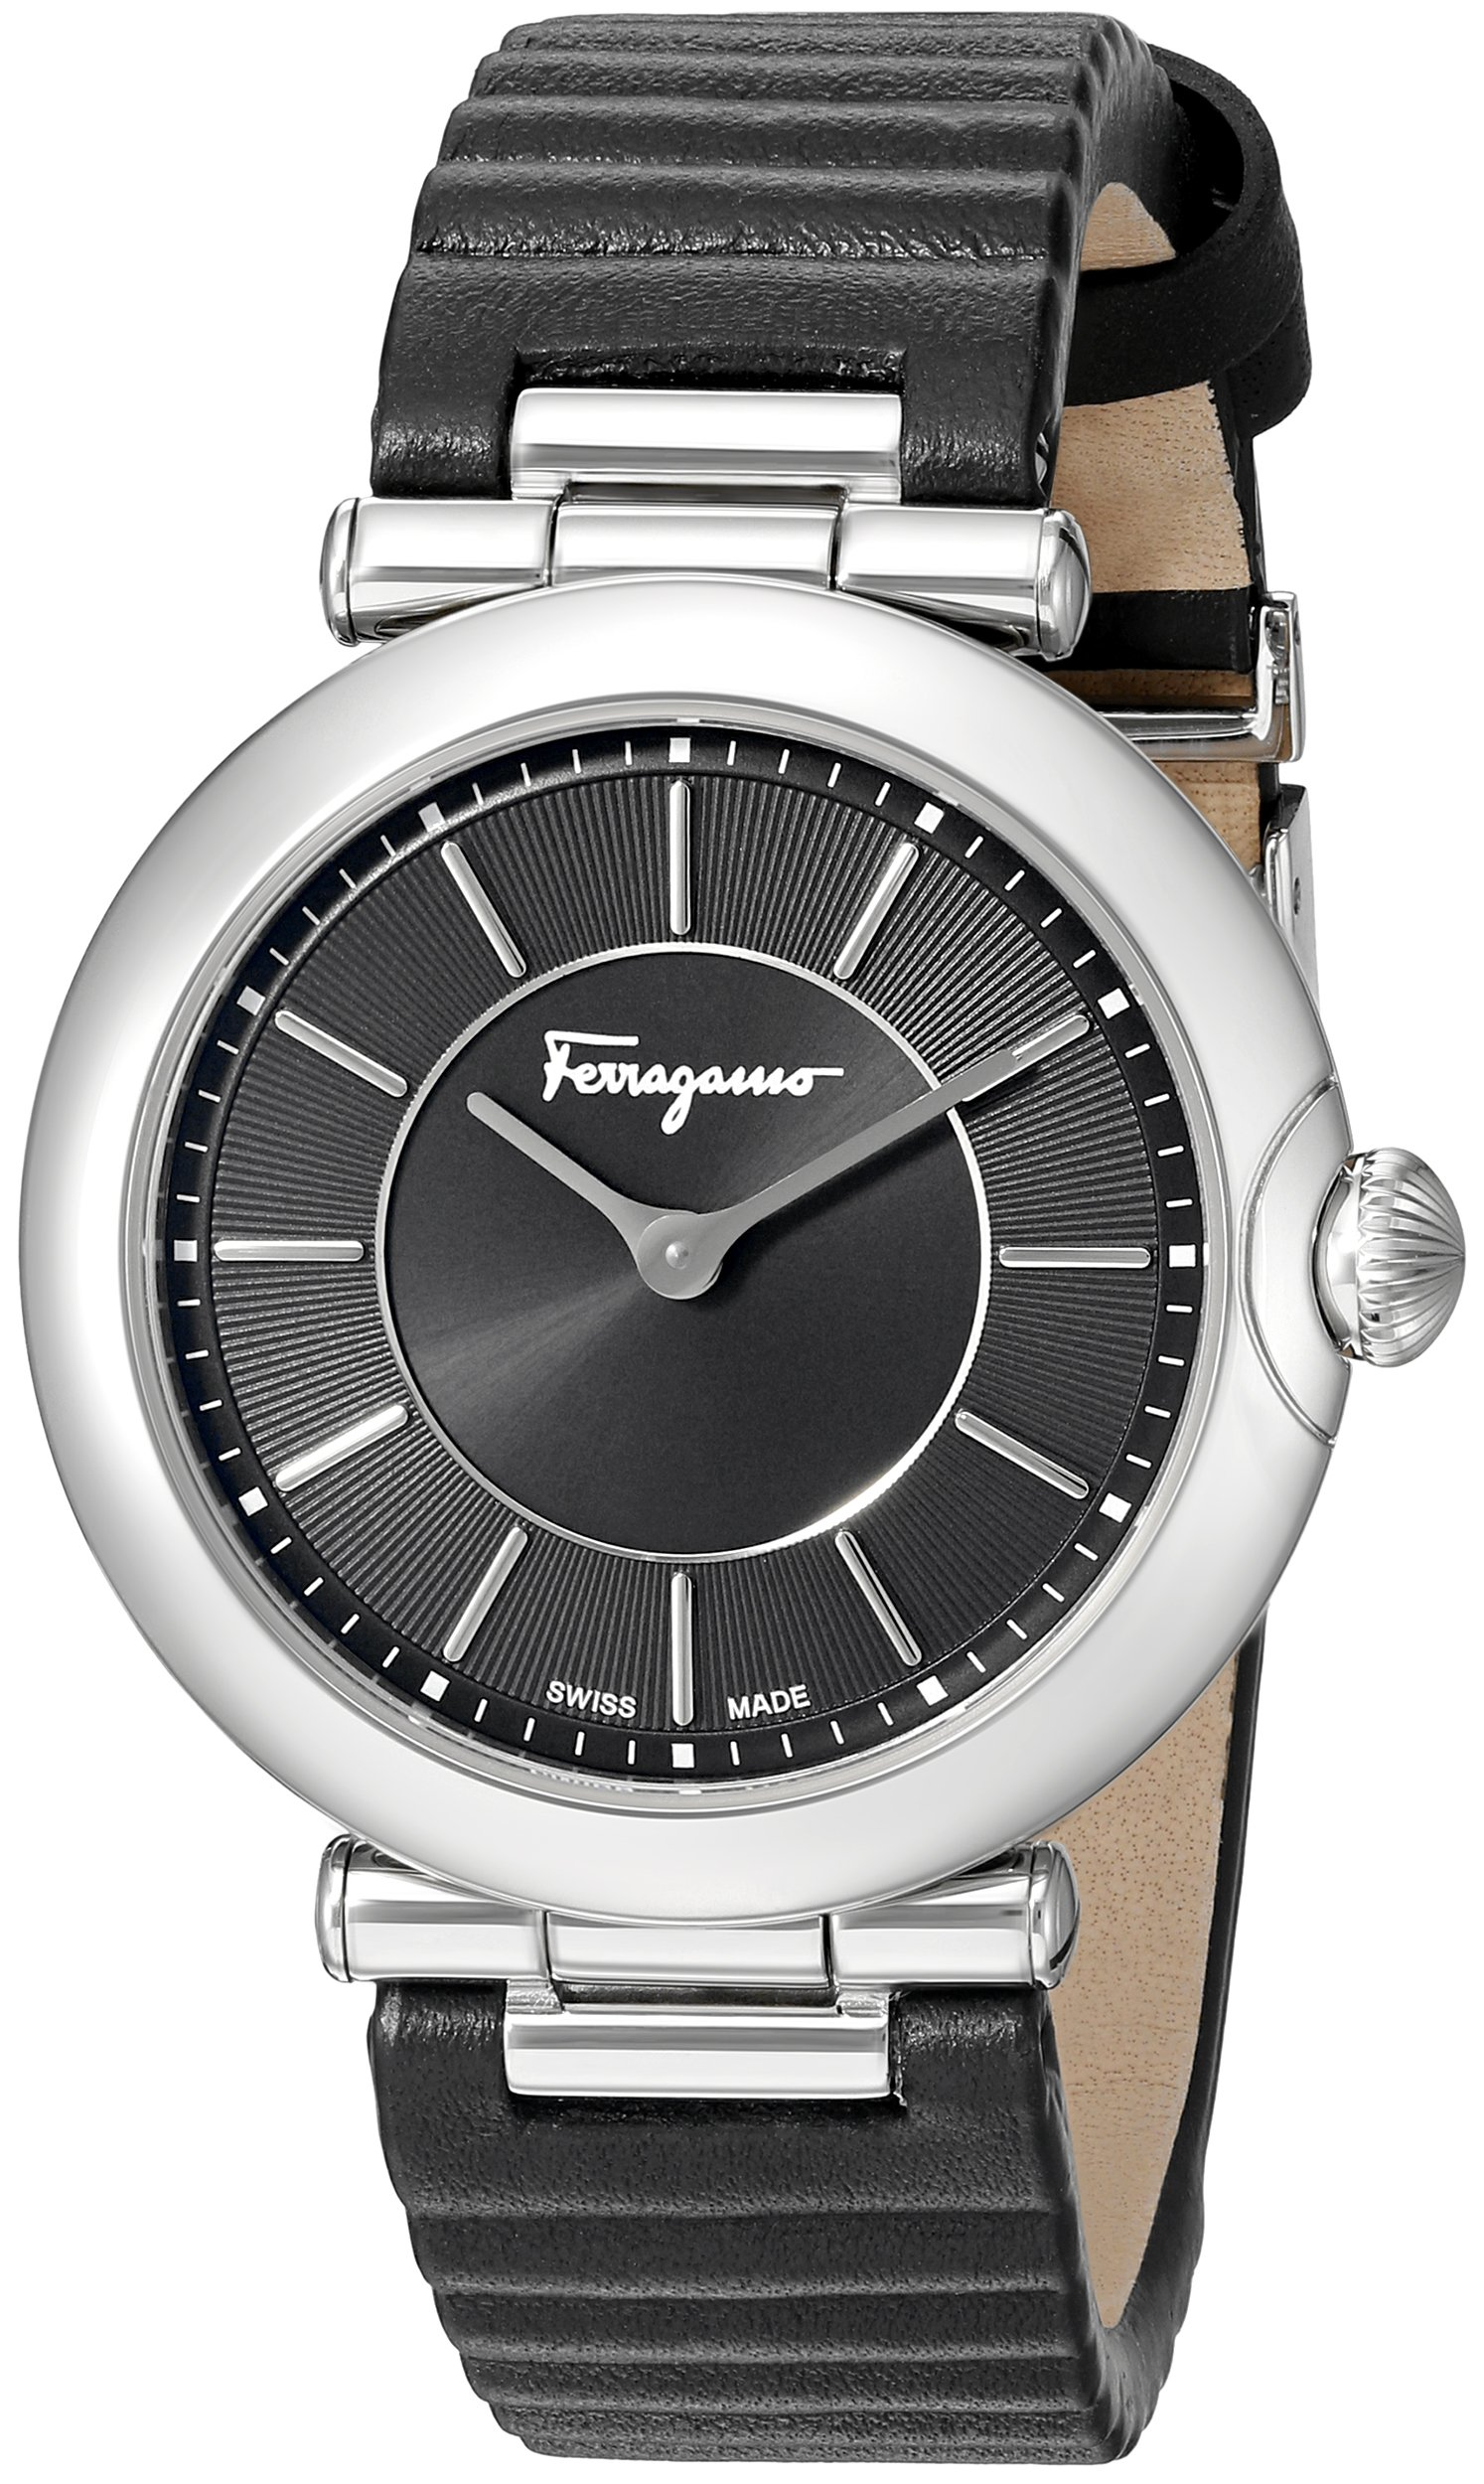 Salvatore Ferragamo Women's FIN010015 Style Analog Display Quartz Black Watch by Salvatore Ferragamo